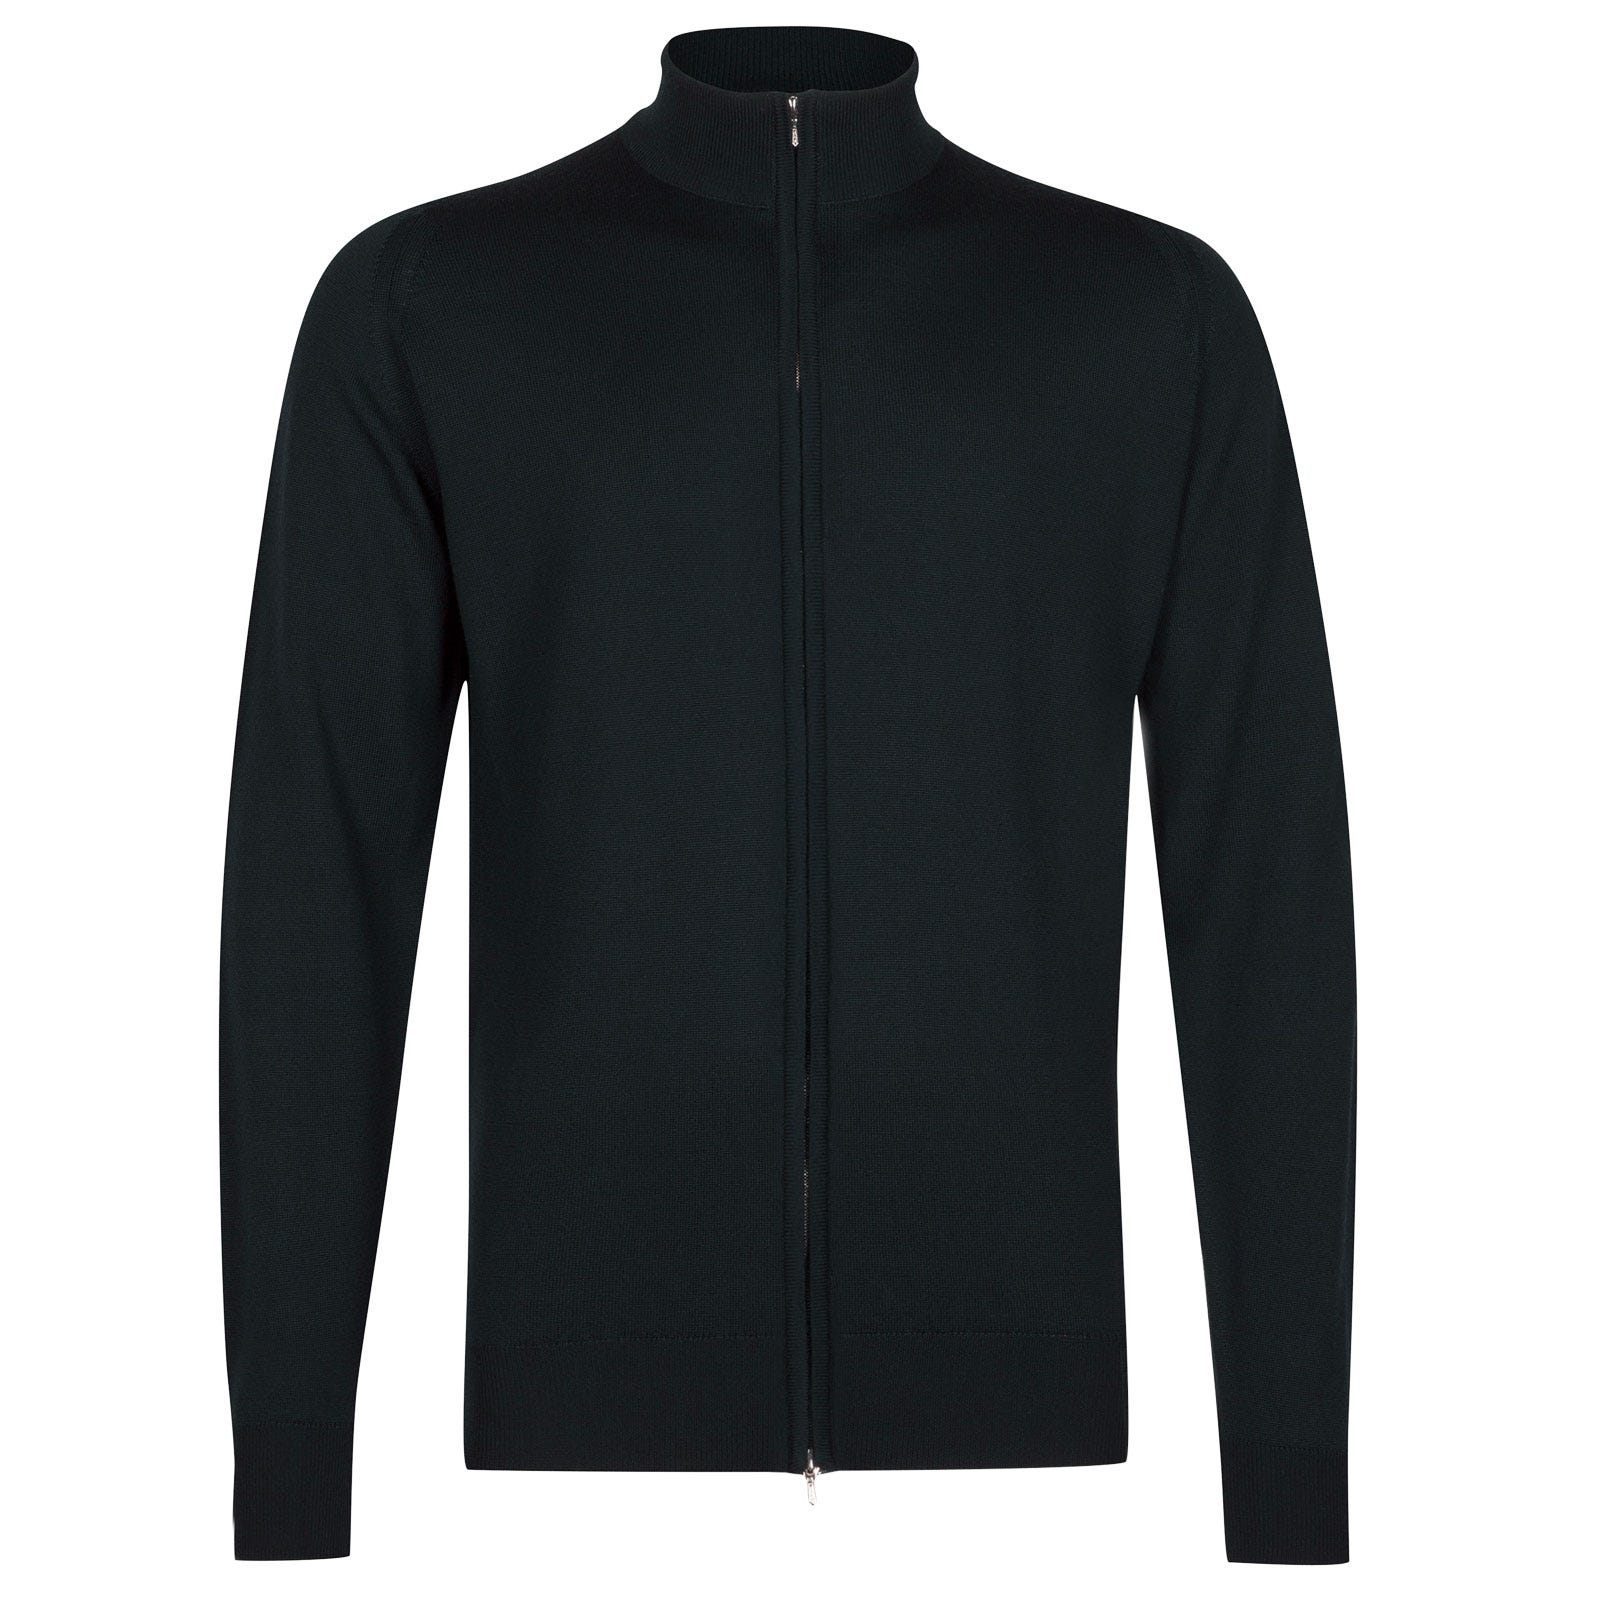 John Smedley Claygate Merino Wool Jacket in Racing Green-XXL